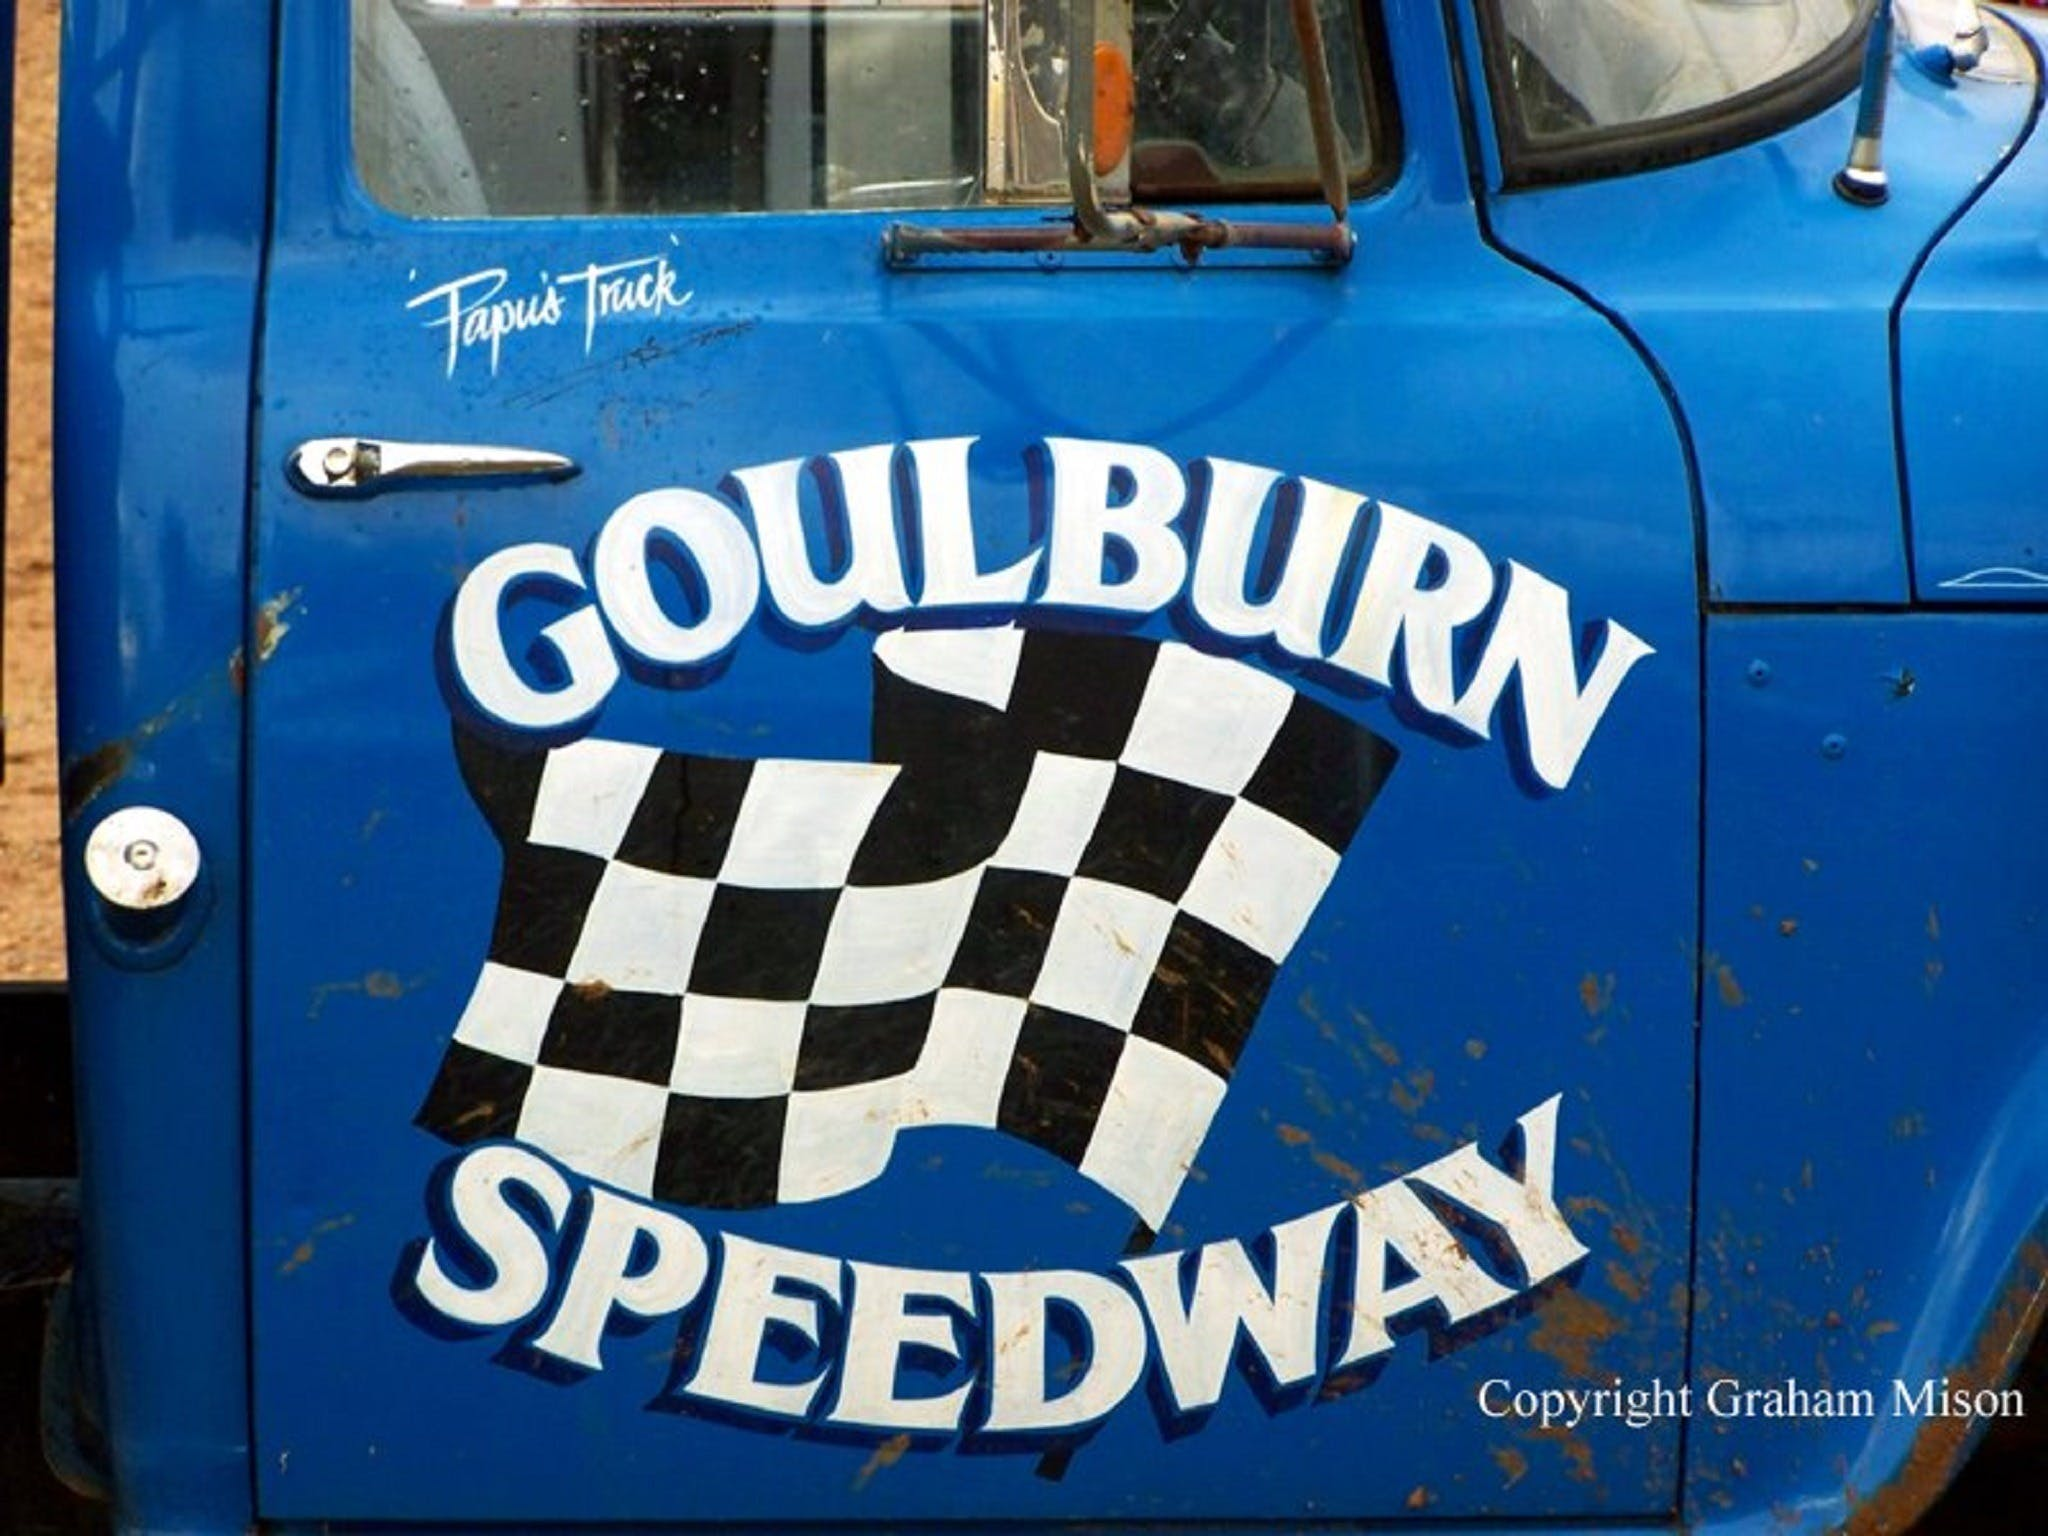 50 years of racing at Goulburn Speedway - Accommodation Fremantle